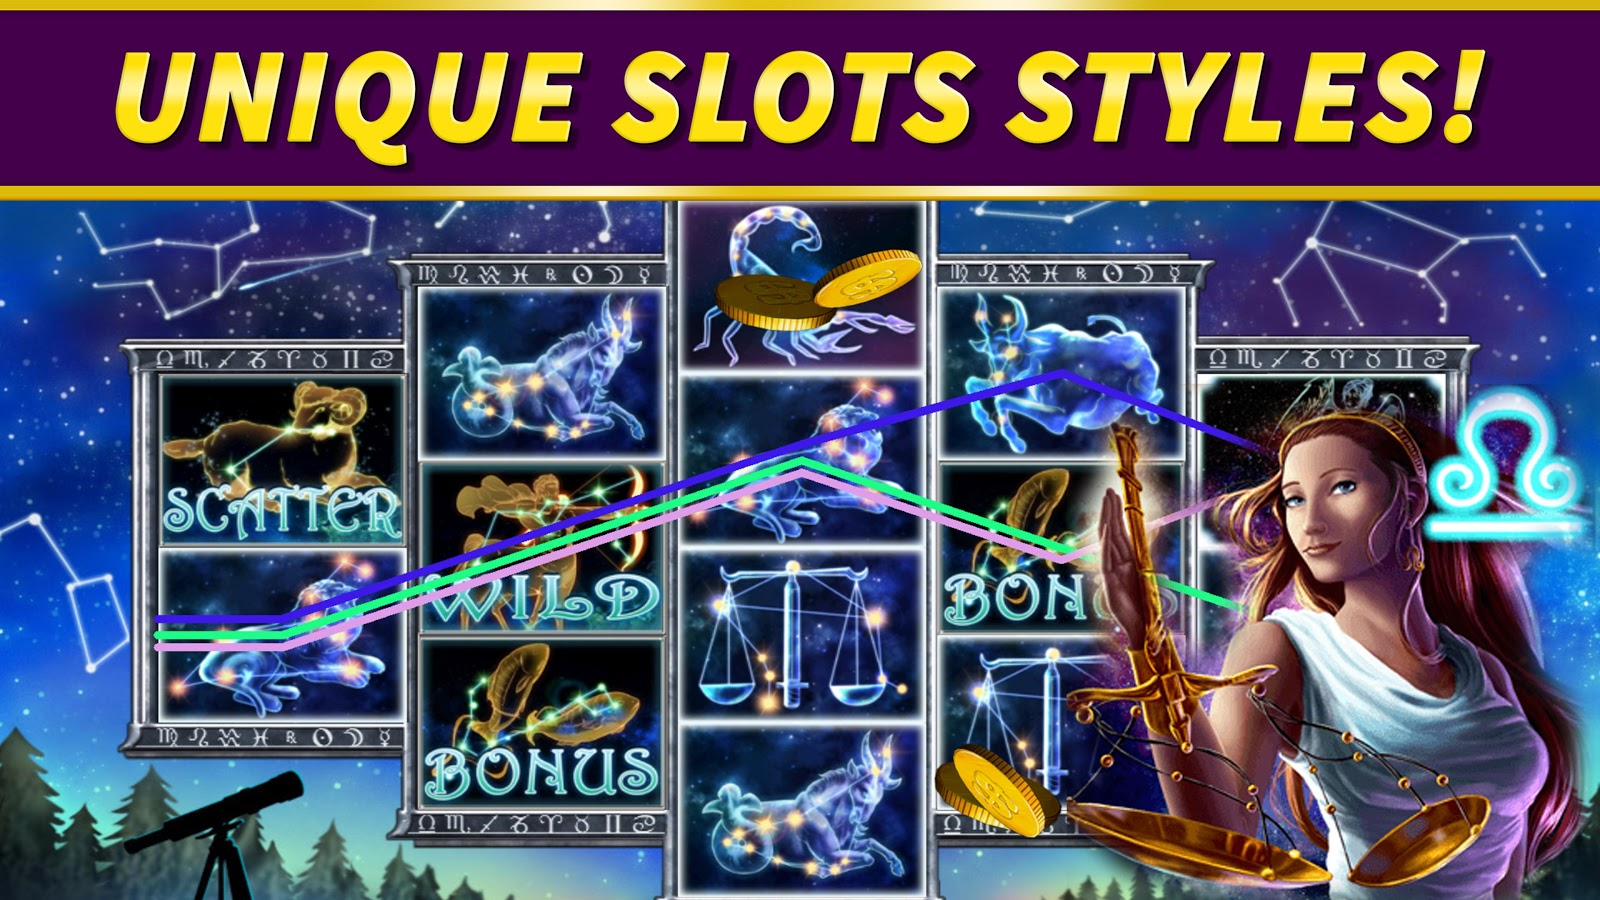 Zodiac Slot Machine - Play for Free Instantly Online